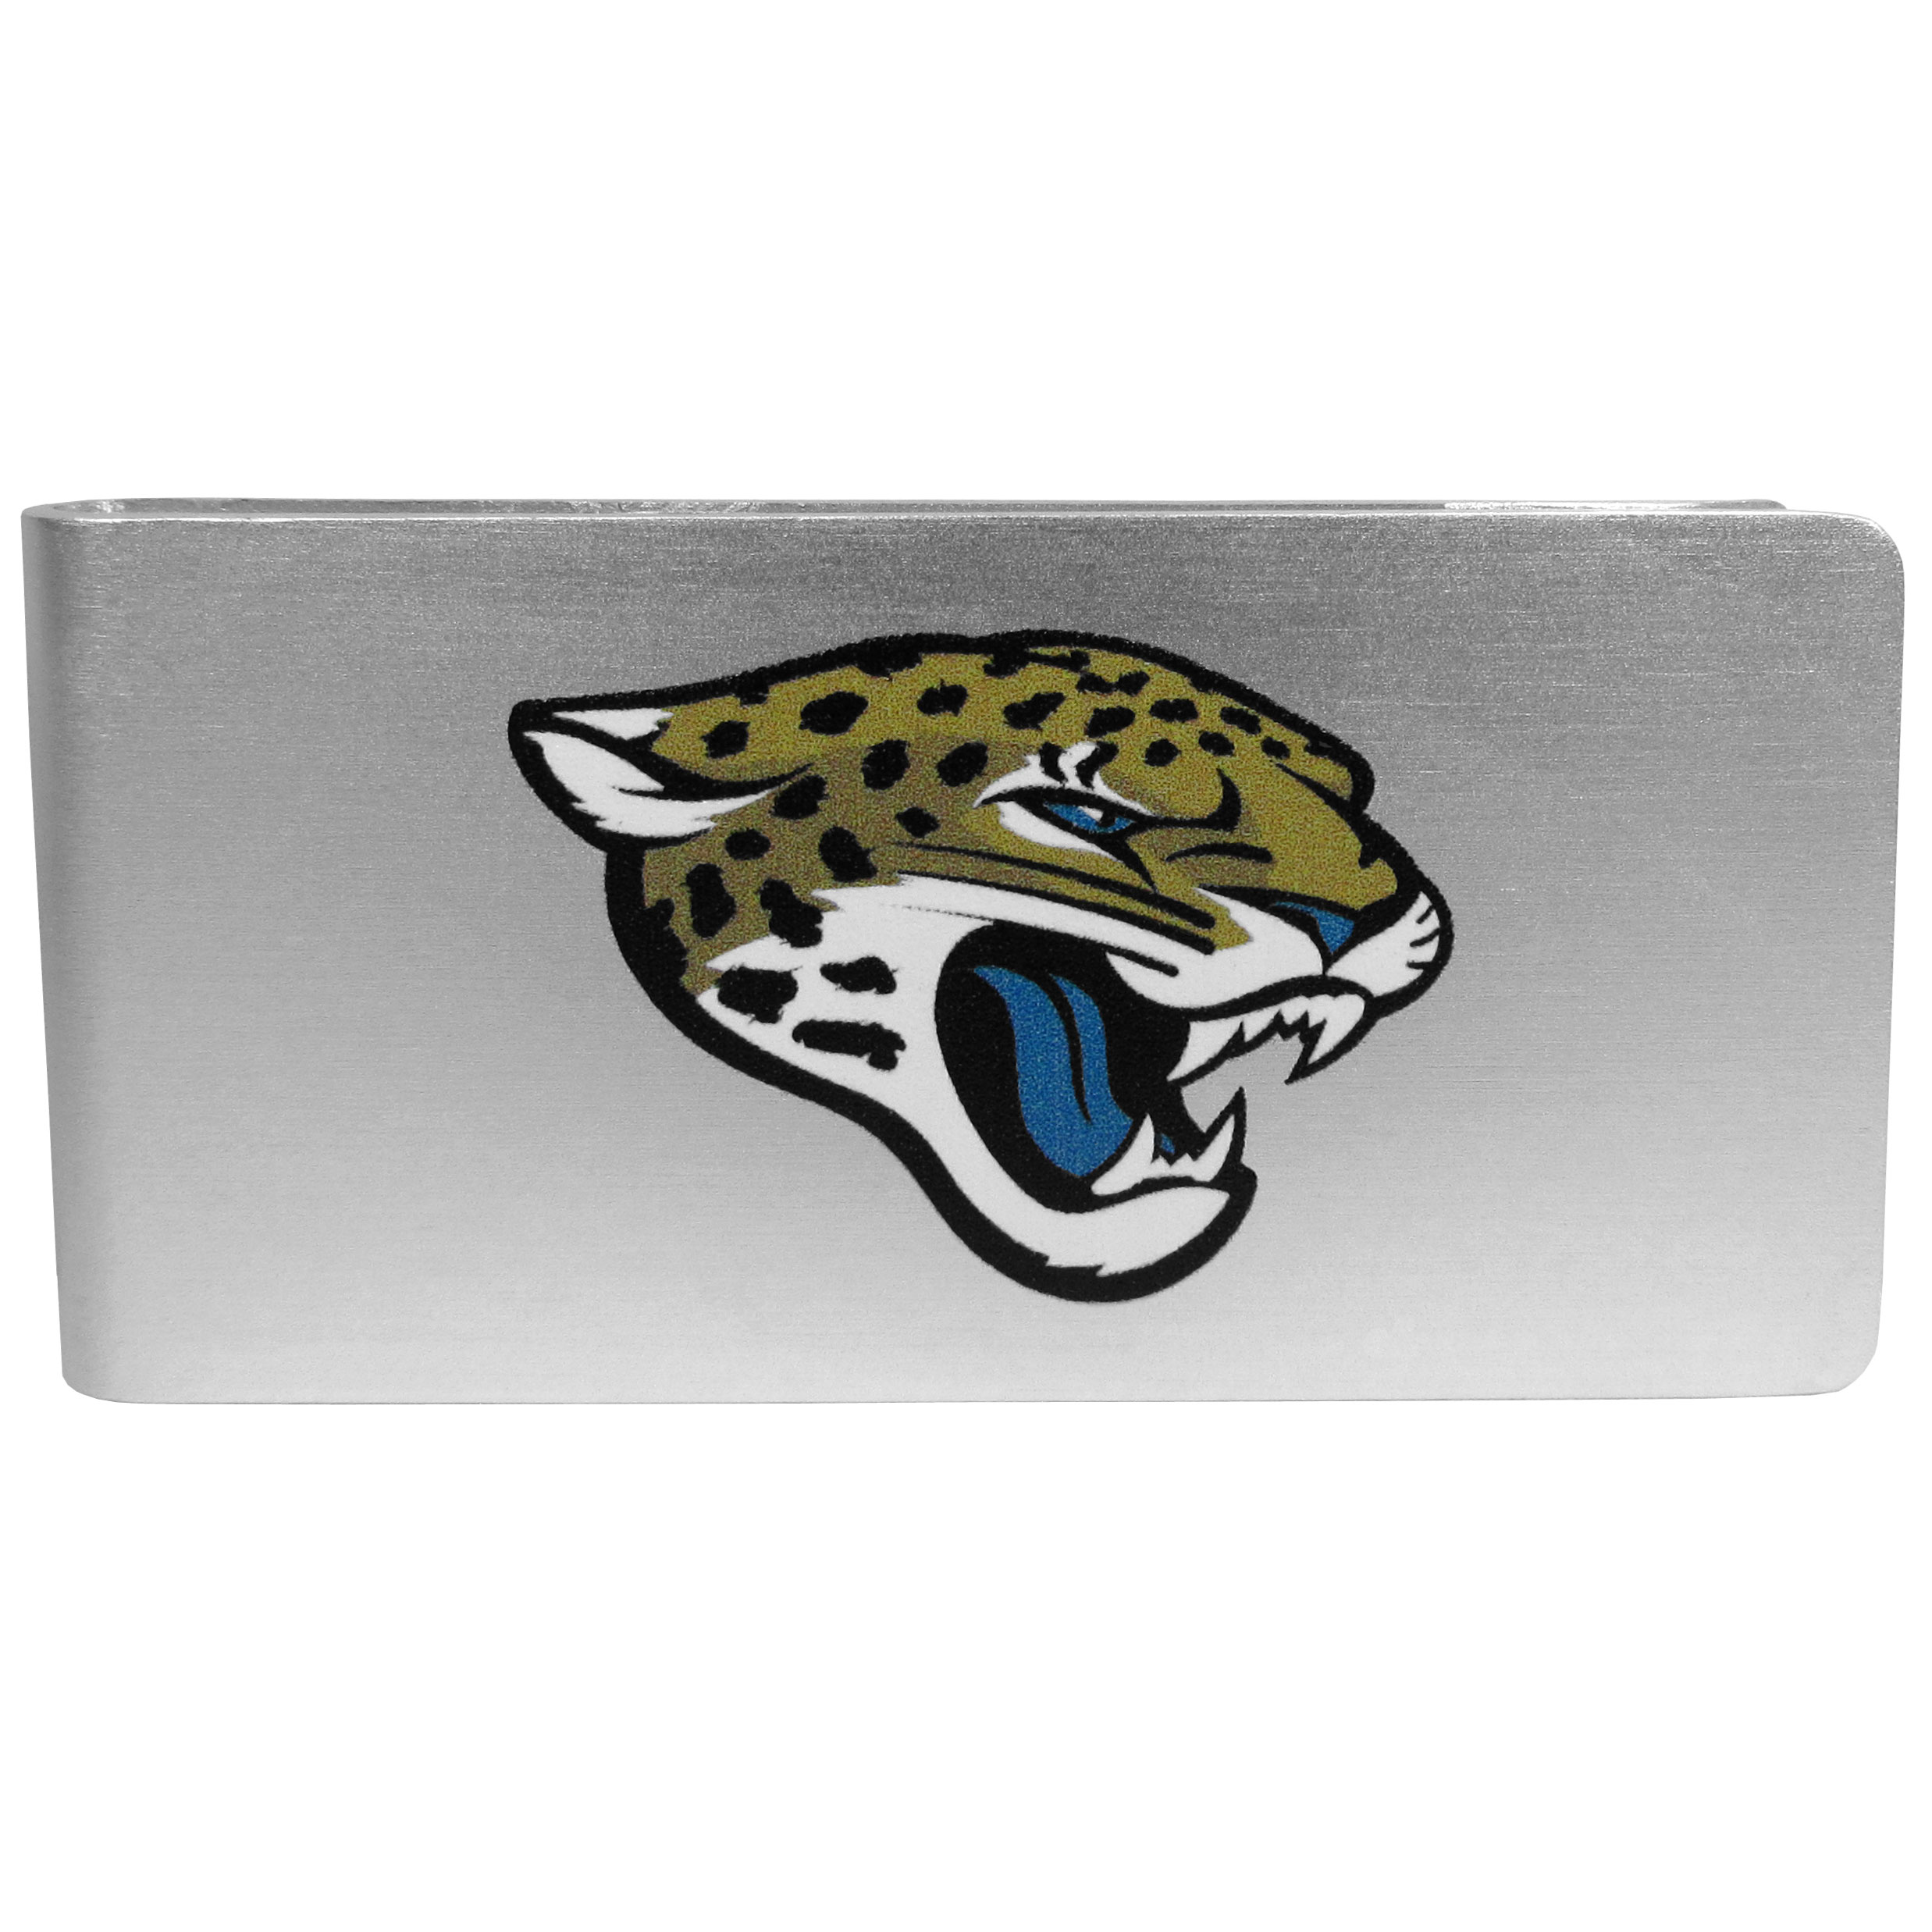 Jacksonville Jaguars Logo Money Clip - Our brushed metal money clip has classic style and functionality. The attractive clip features the Jacksonville Jaguars logo expertly printed on front.